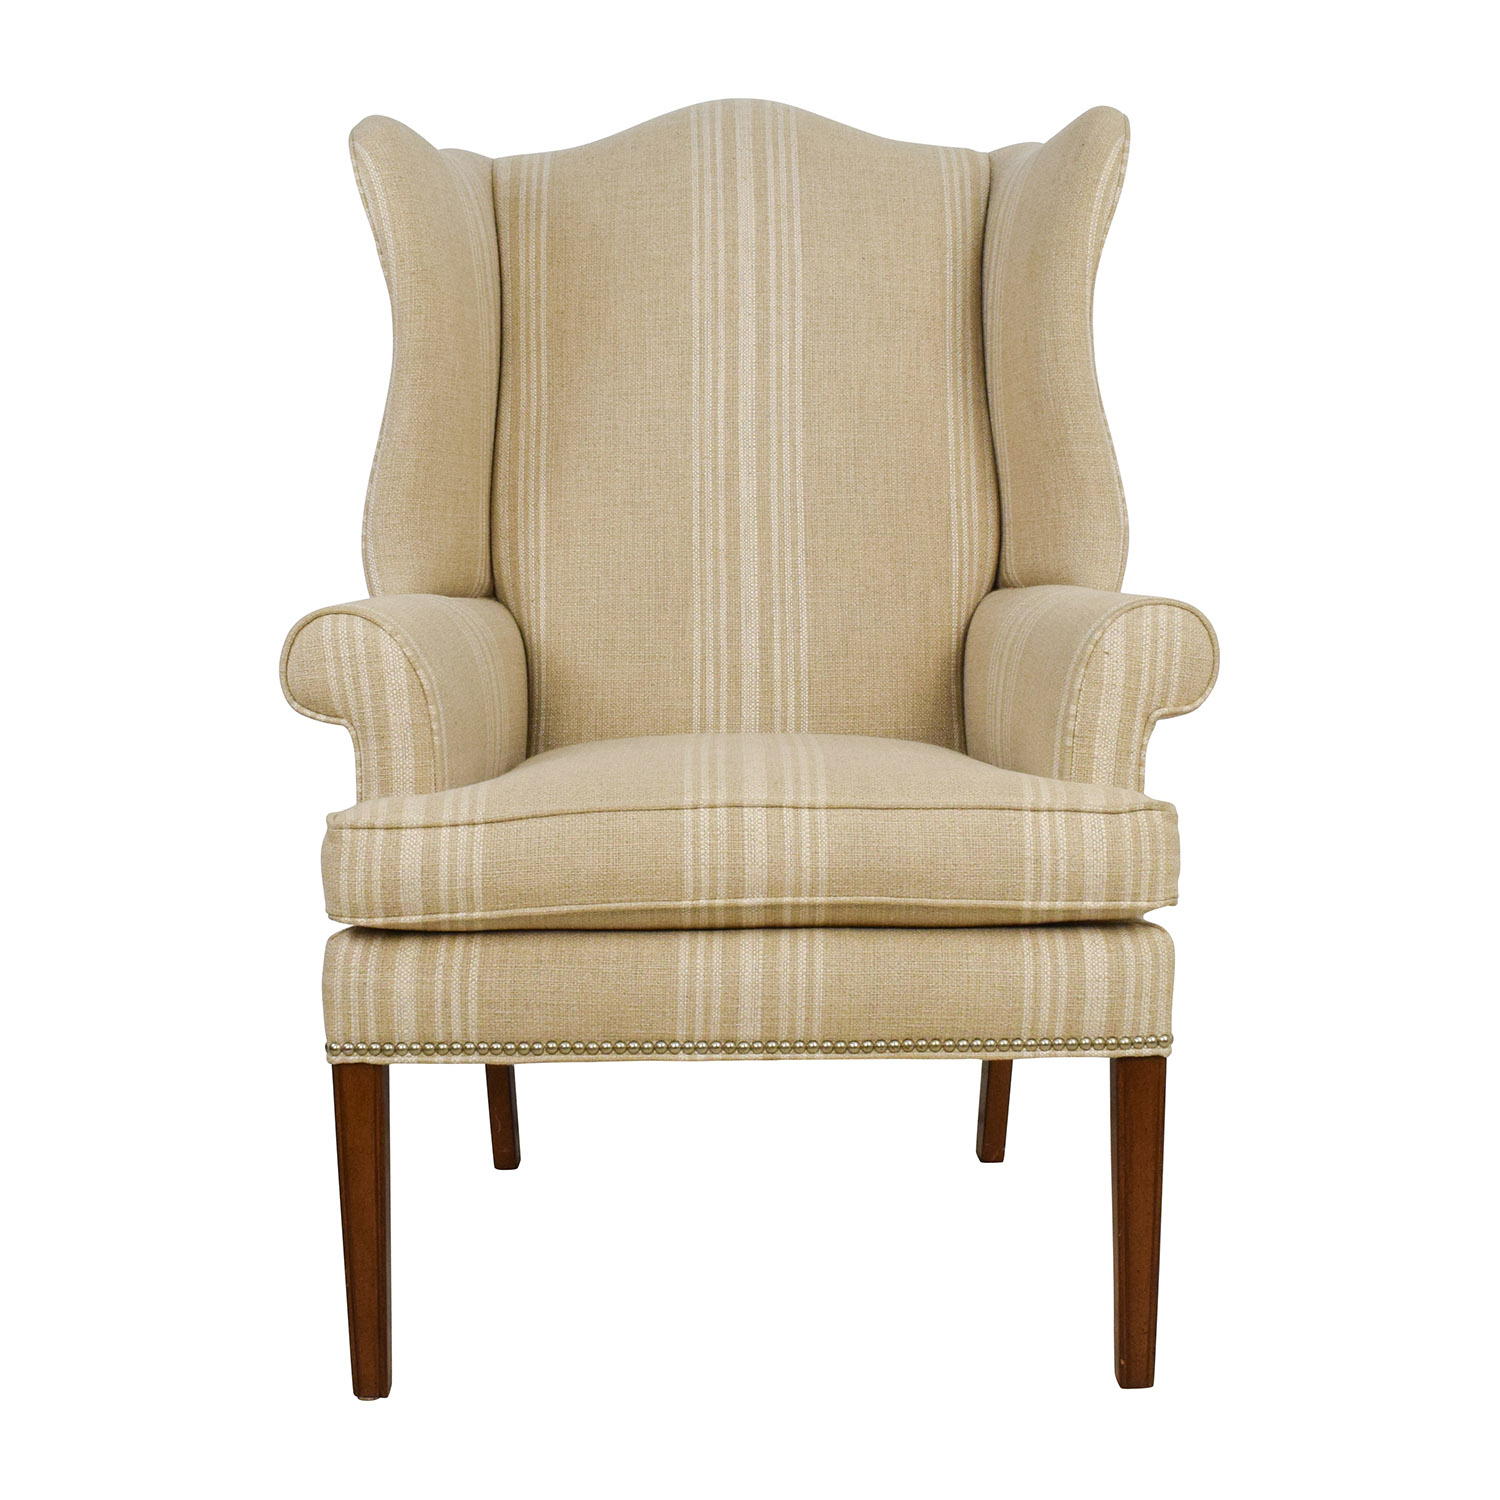 Charmant Ethan Allen Ethan Allen Skylar Stripped Wing Chair Second Hand ...